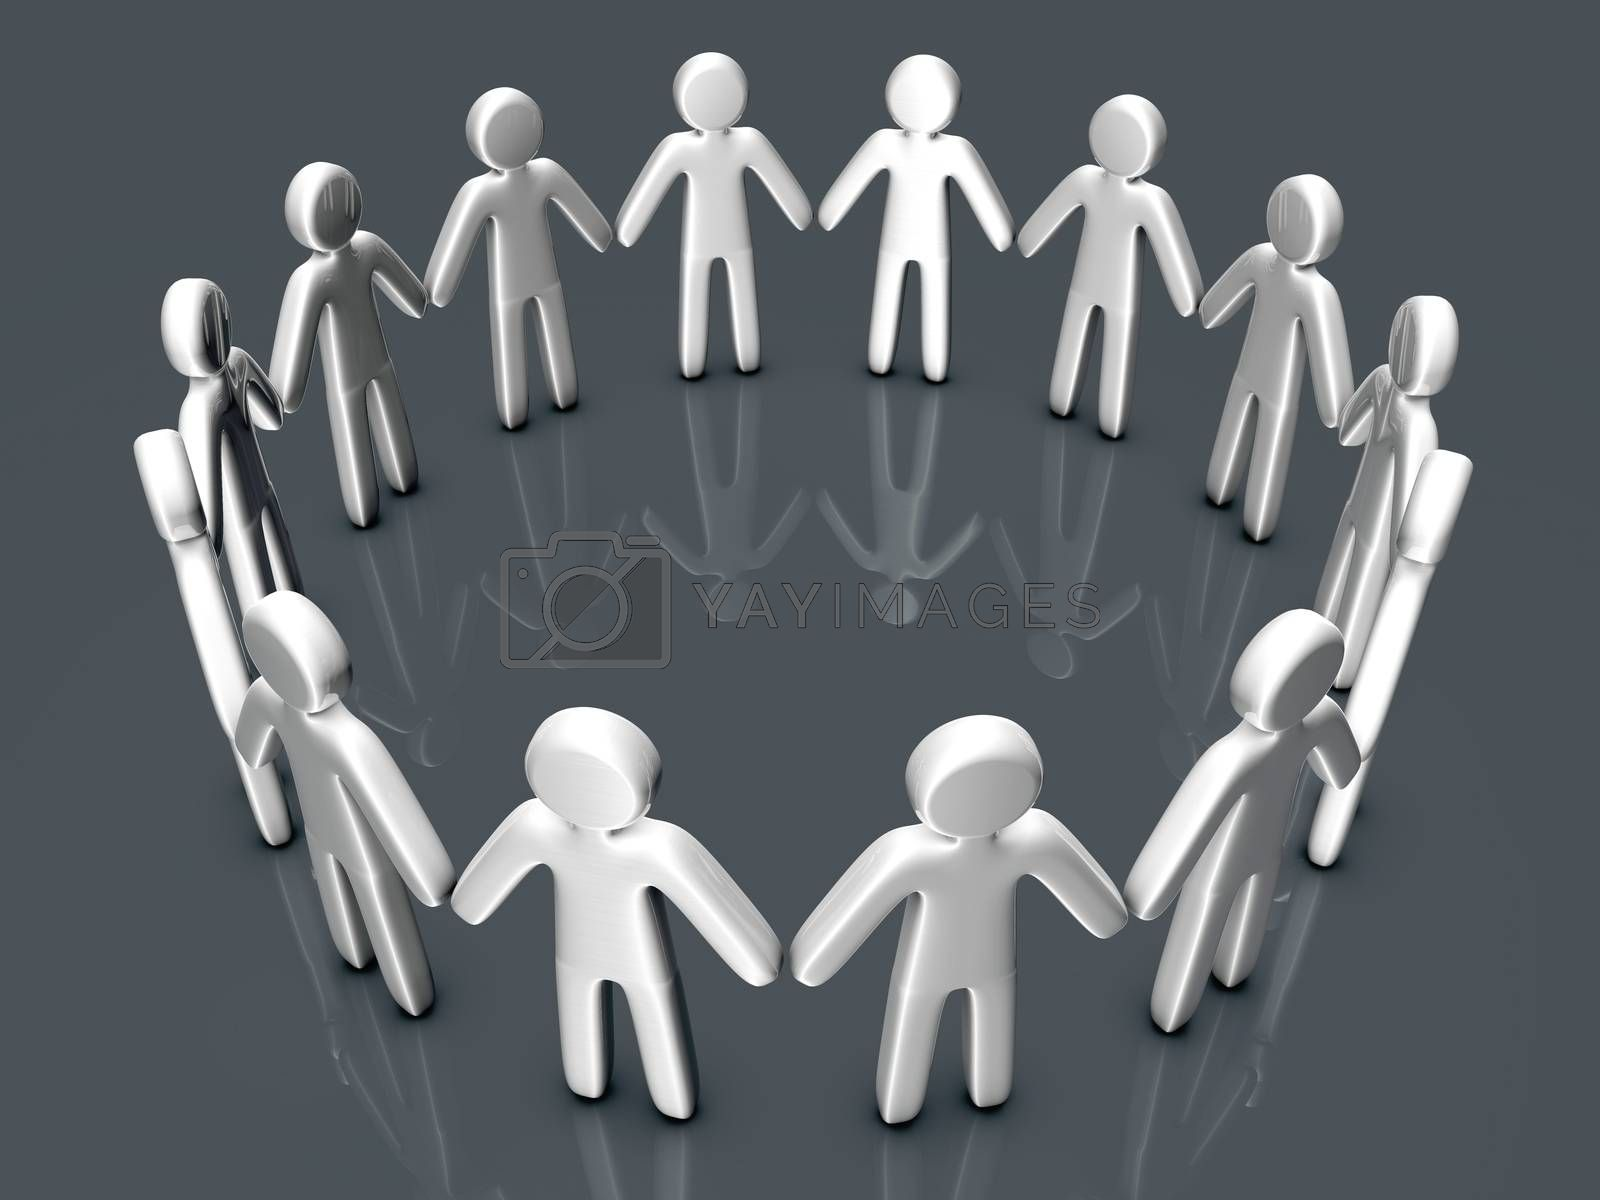 A group of icon people standing in a circle. 3D rendered Illustration.